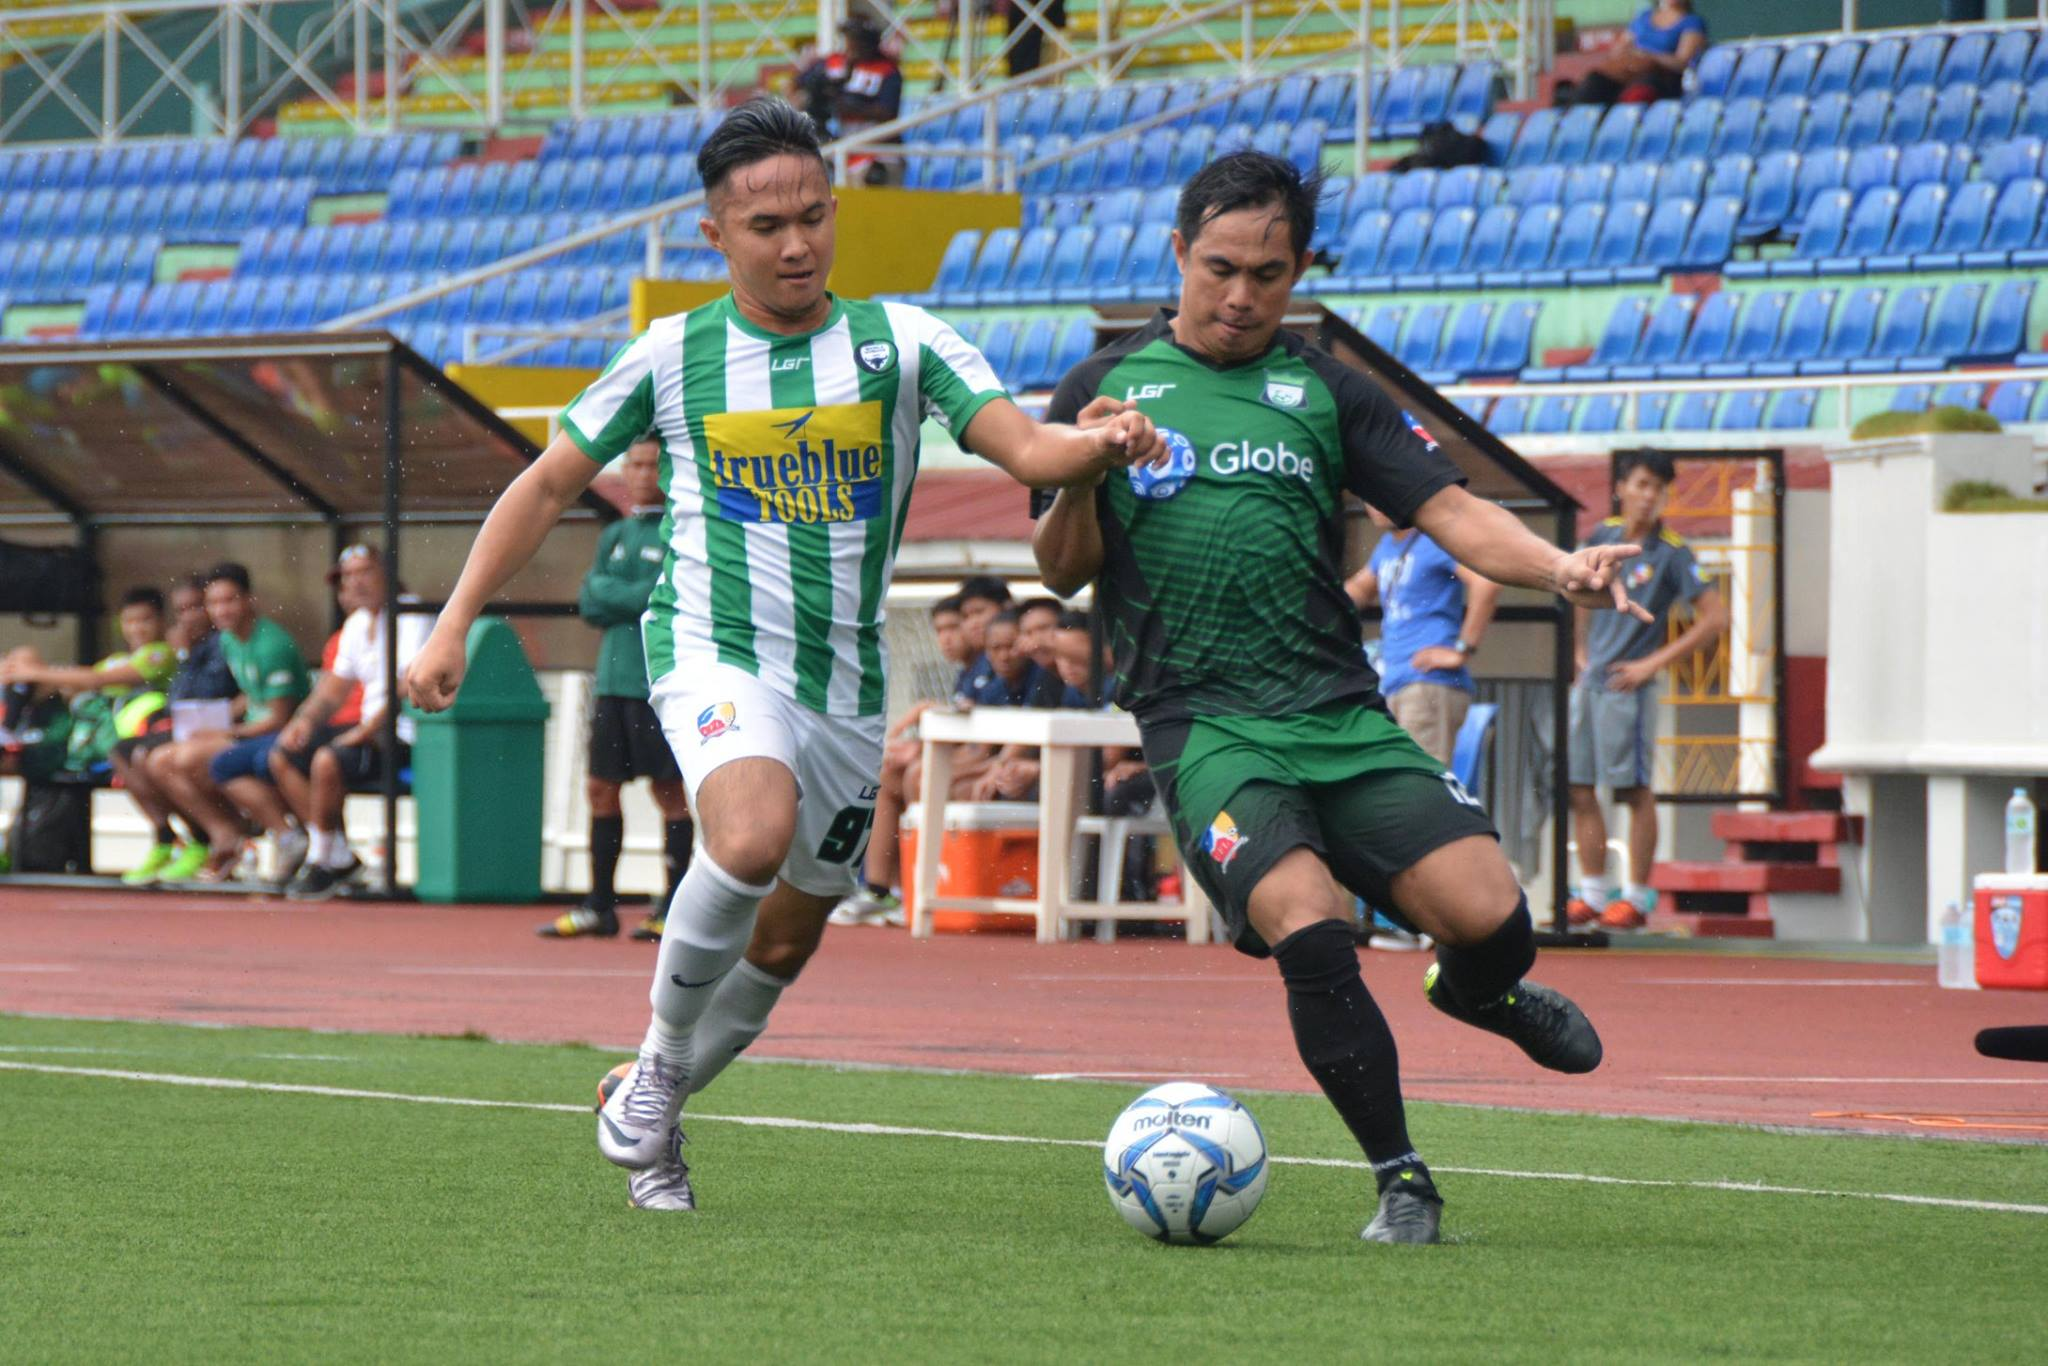 Tiebreaker Times Green Archers United, JP Voltes clinch vital wins Football News  Takumi Uesato Rodolfo Alicante Nomads FC Kenneth James JP Voltes FC Green Archers United FC Agila MSA FC 2016 UFL League